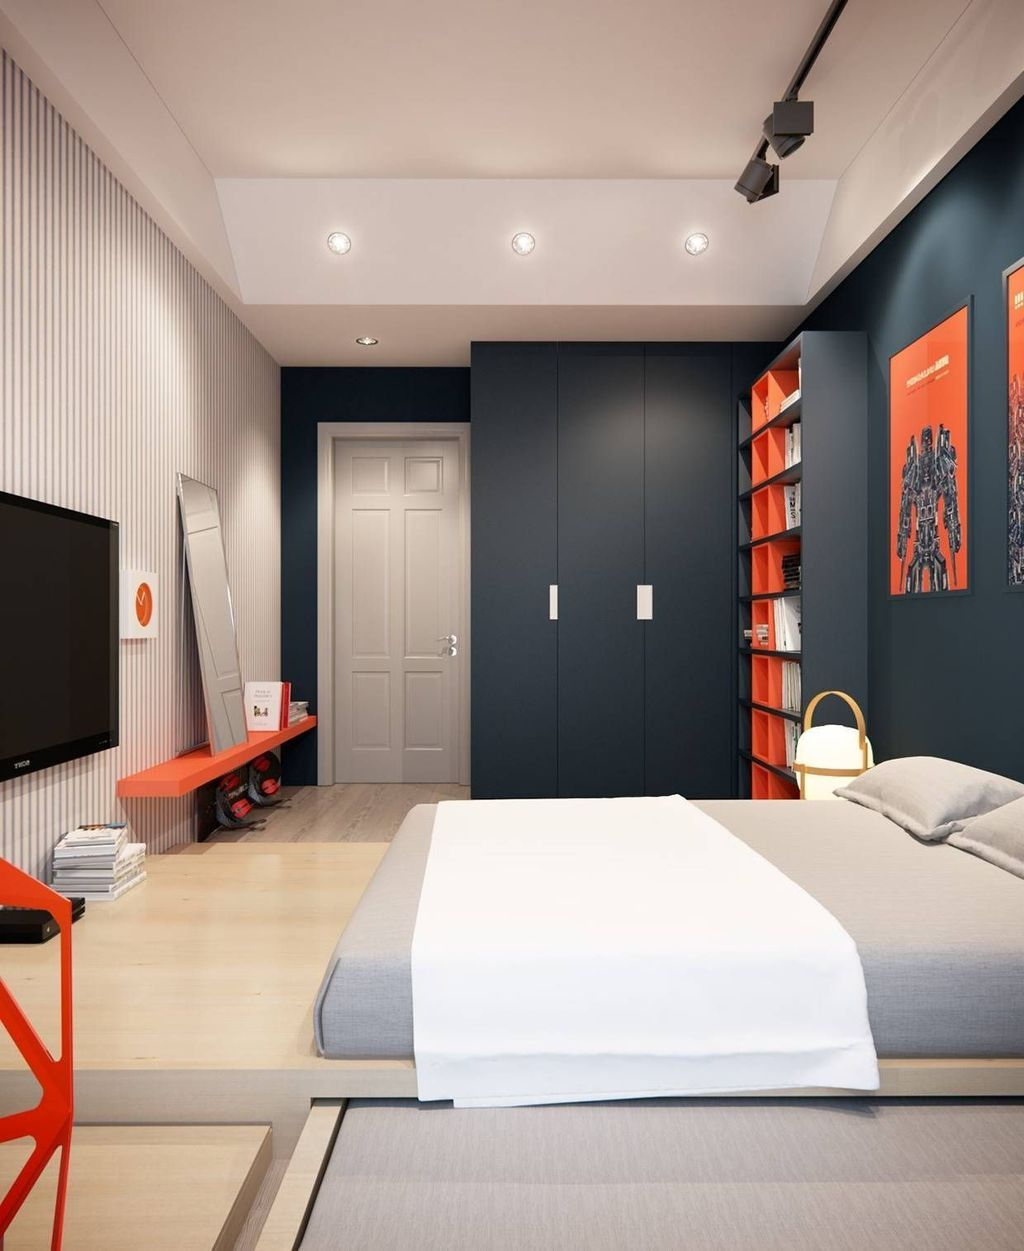 30+ Stunning Bedroom Decoratiion Ideas For Your Boys is part of Boy bedroom design, Modern bedroom design, Closet bedroom, Bedroom closet doors, Teenager bedroom boy, Interior design bedroom - If you are a parent of a teenage boy or have been assigned a job of designing bedroom for a […]